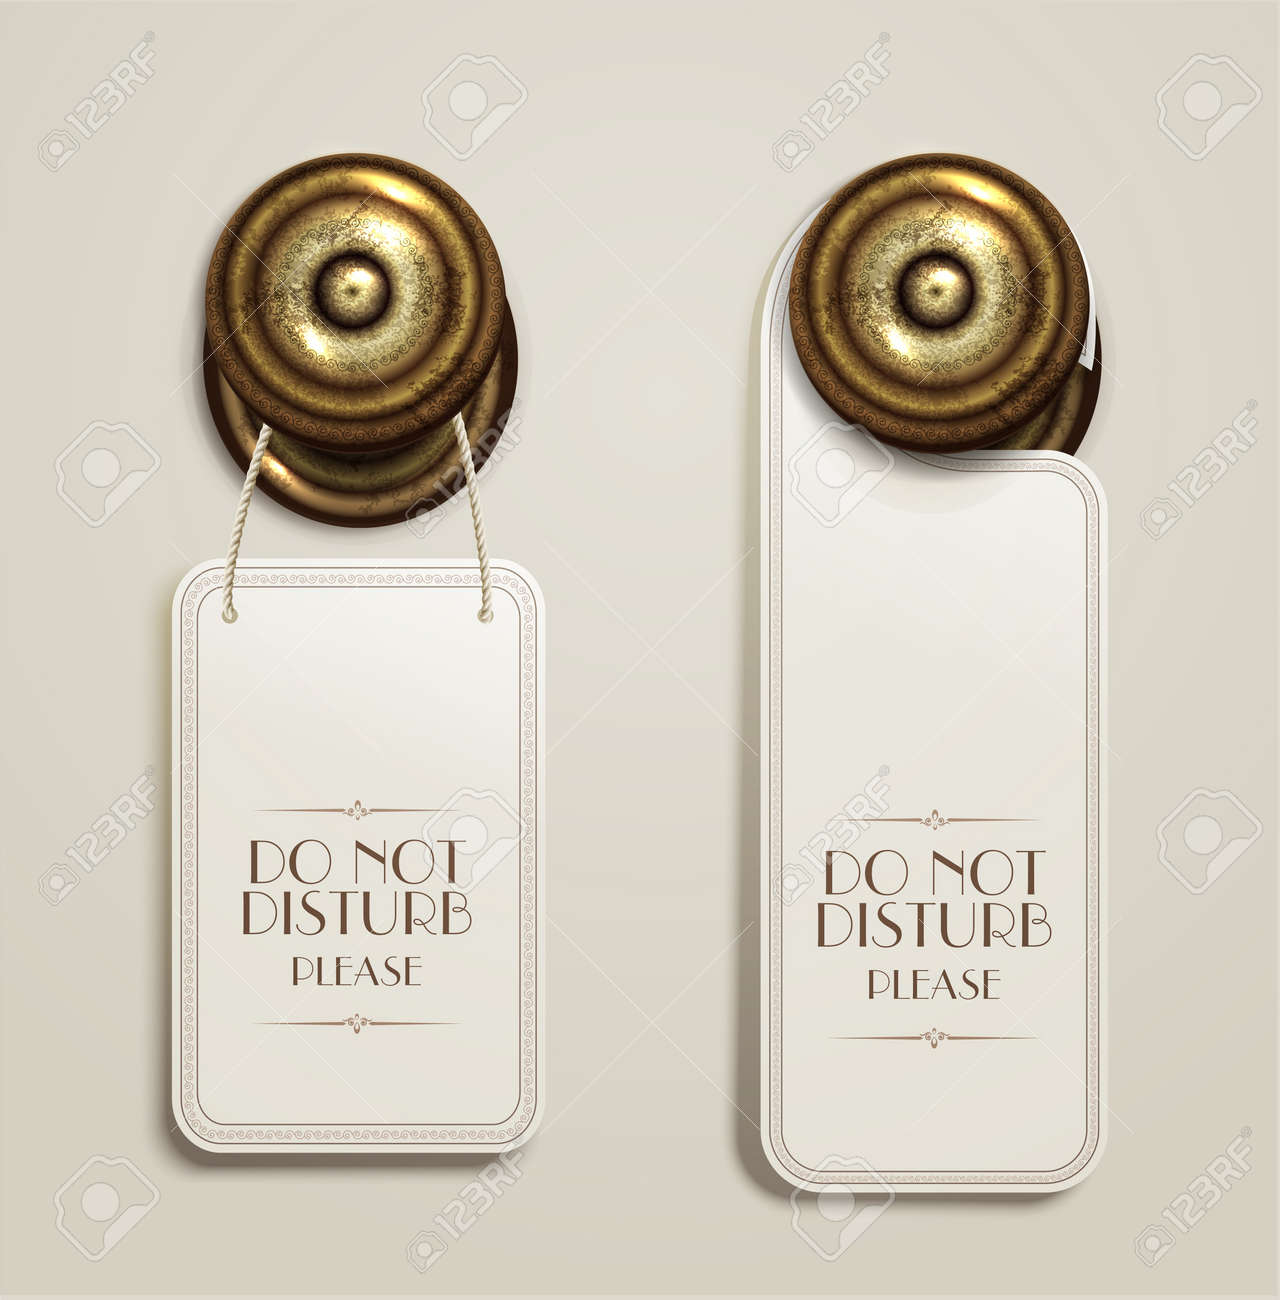 Hotel Handles With Hanging Signs Royalty Free Cliparts, Vectors ...